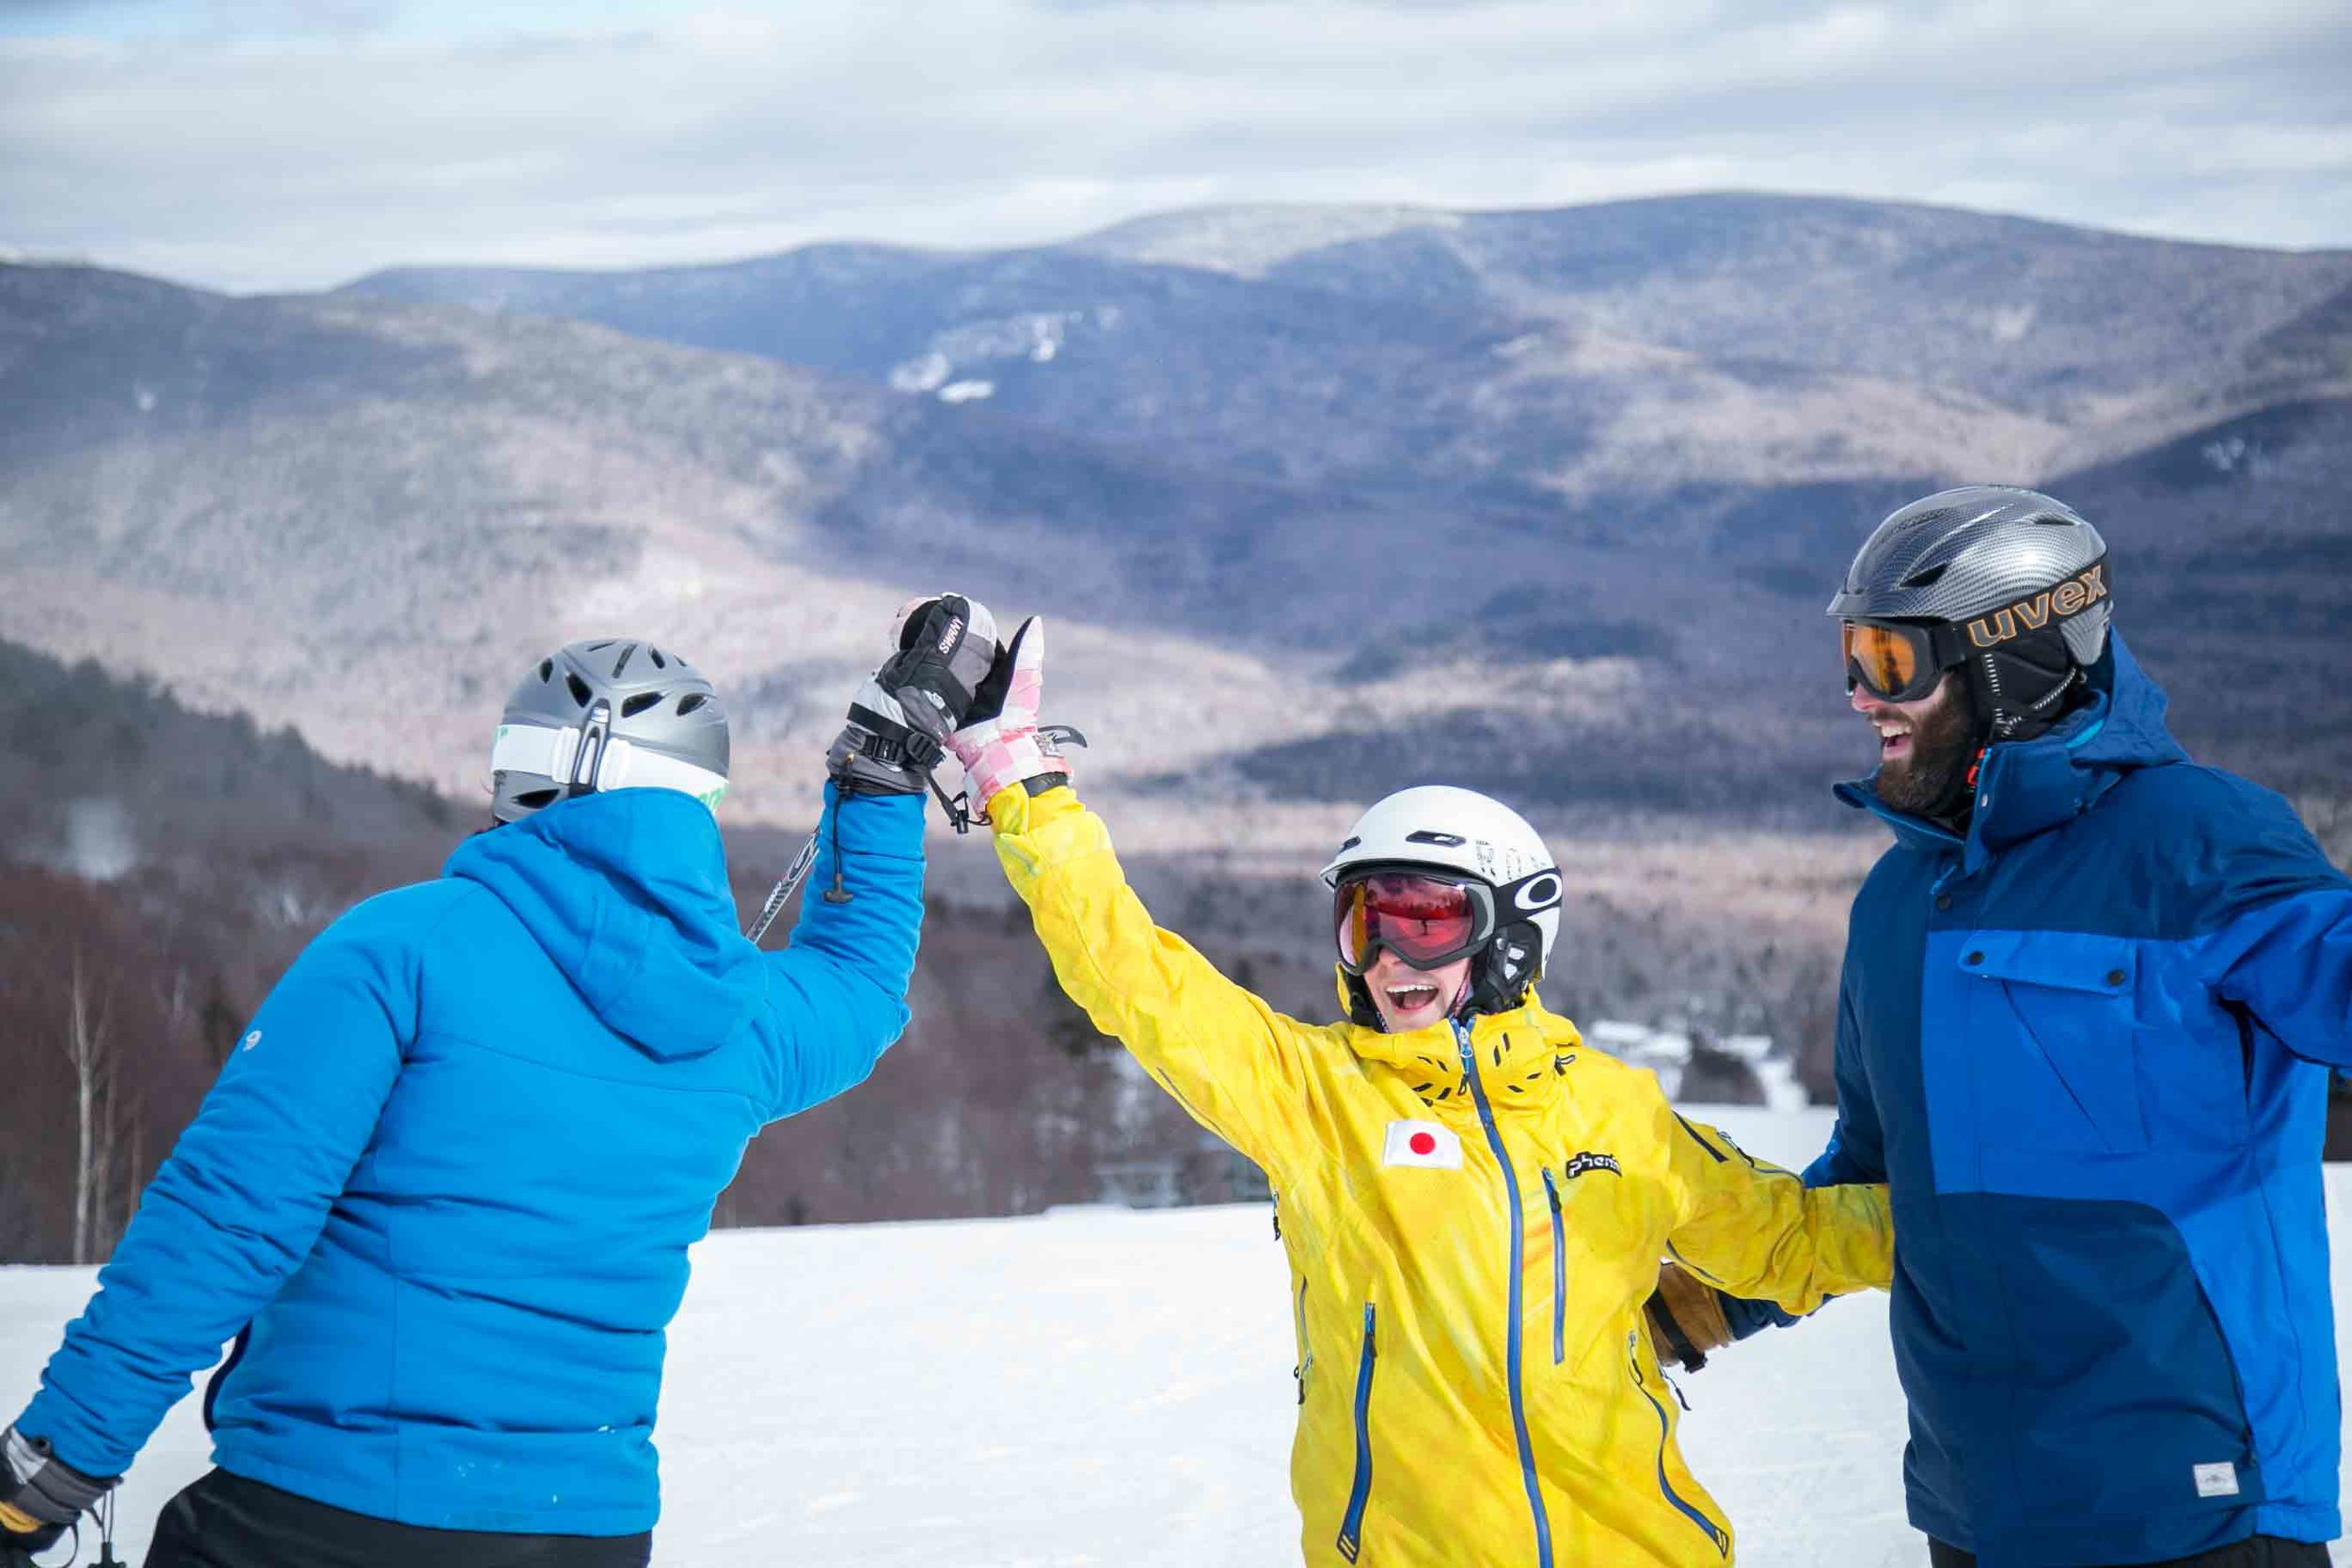 Make memories with friends at Waterville Valley Resort